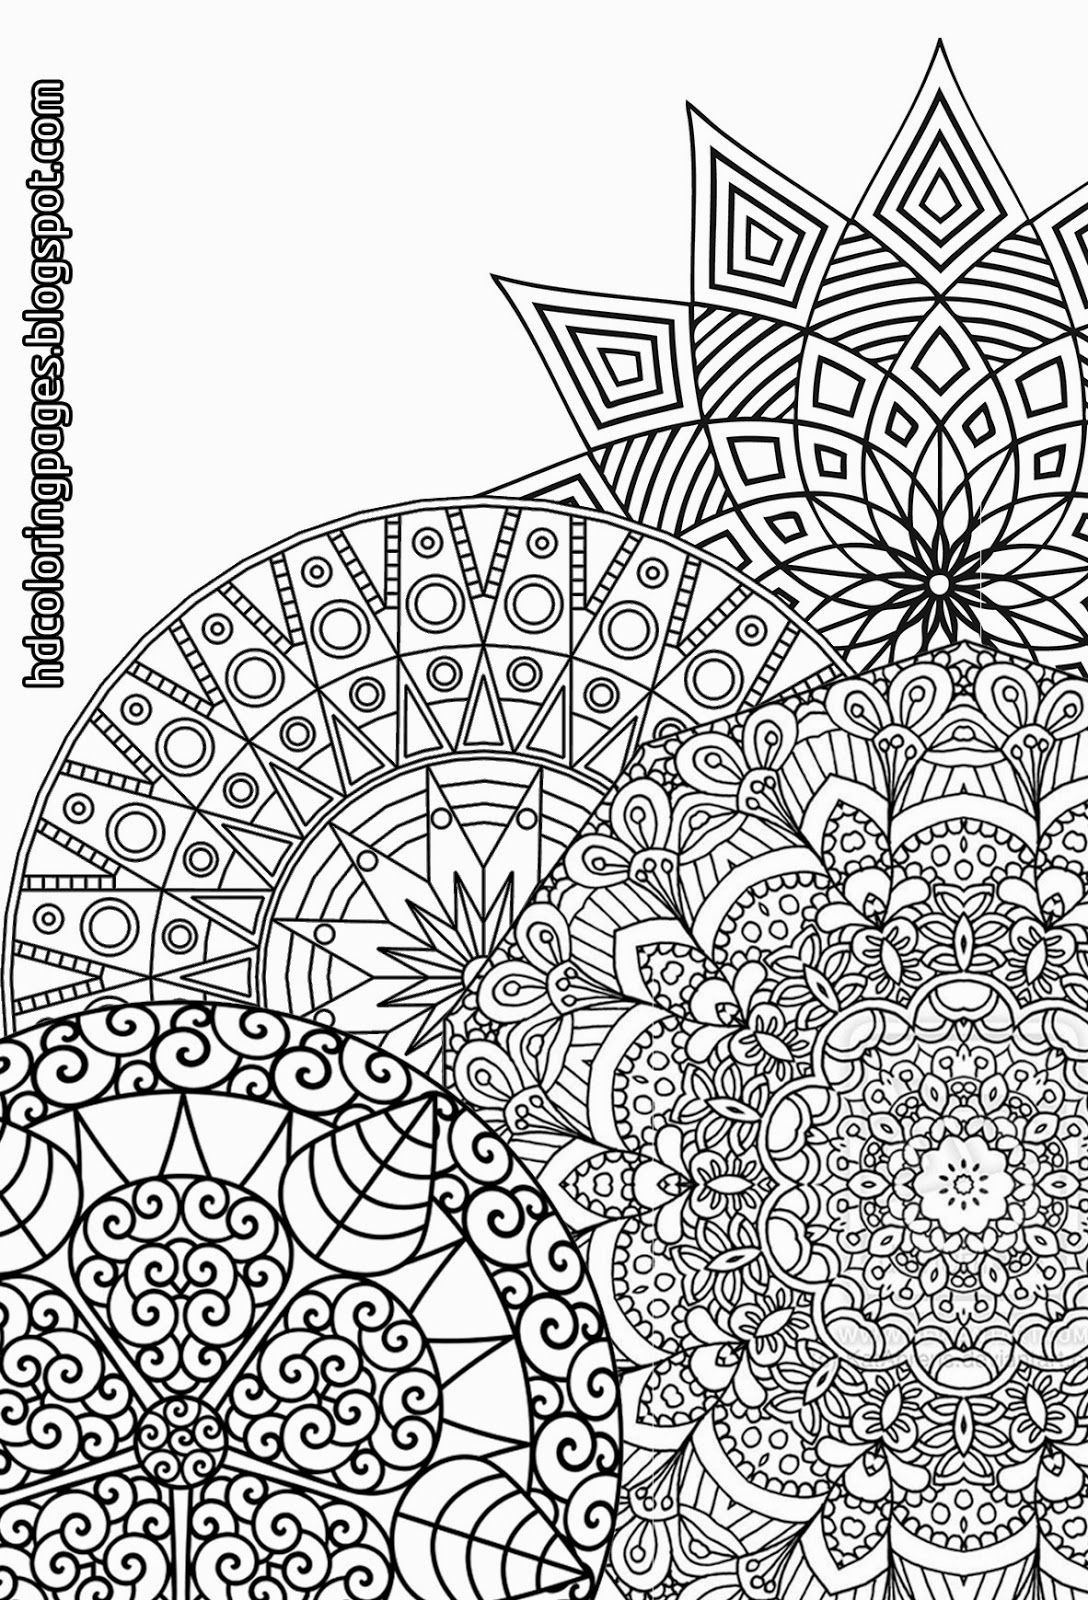 Best ideas about Mandala Adult Coloring Books . Save or Pin Super Detailed Mandalas Coloring Pages for Adult Now.